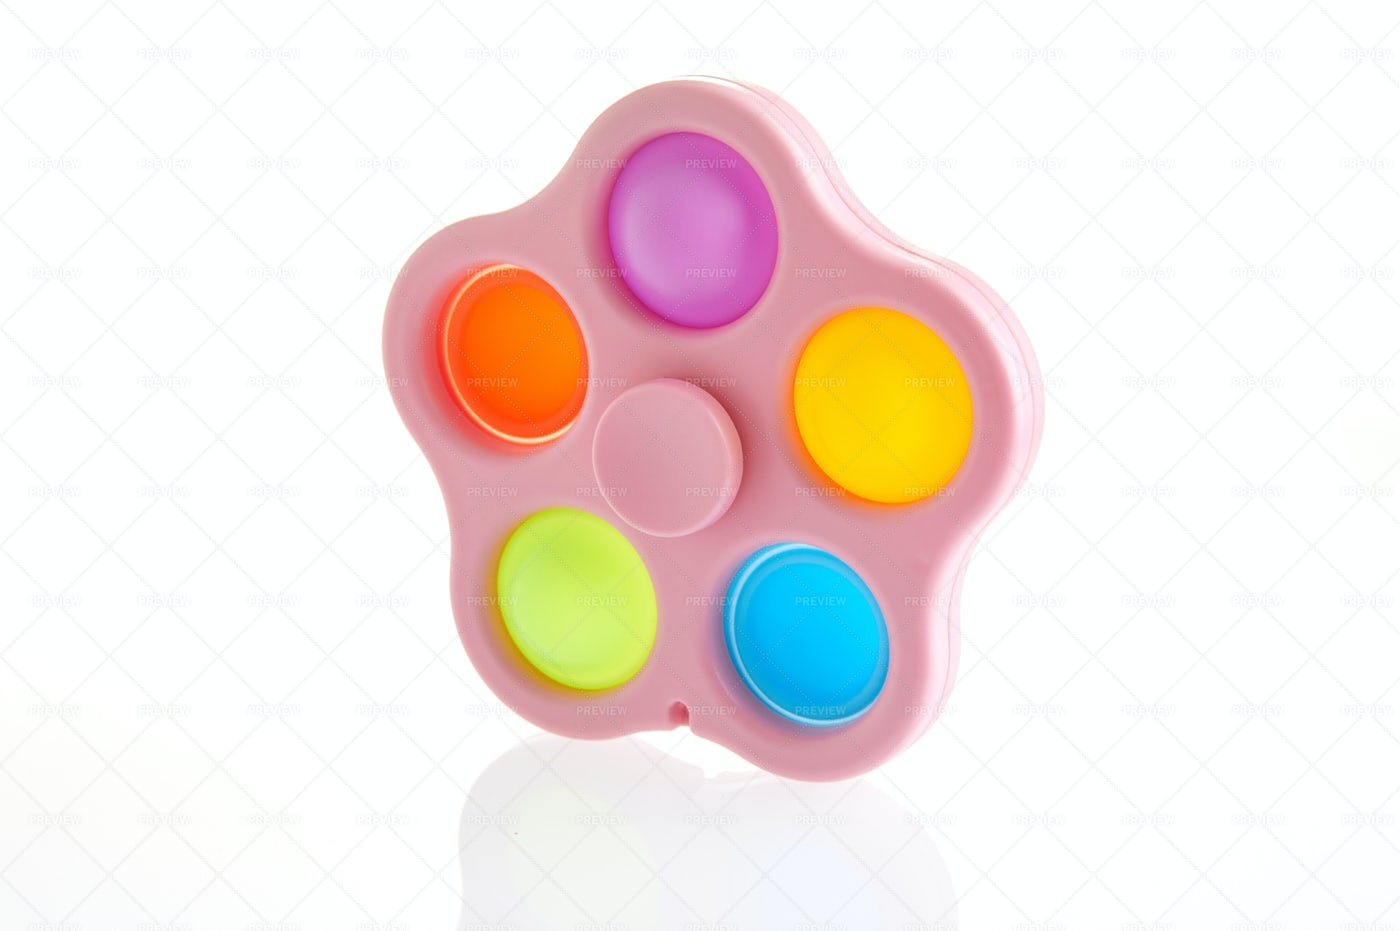 Colorful Spinner And Push Pop: Stock Photos